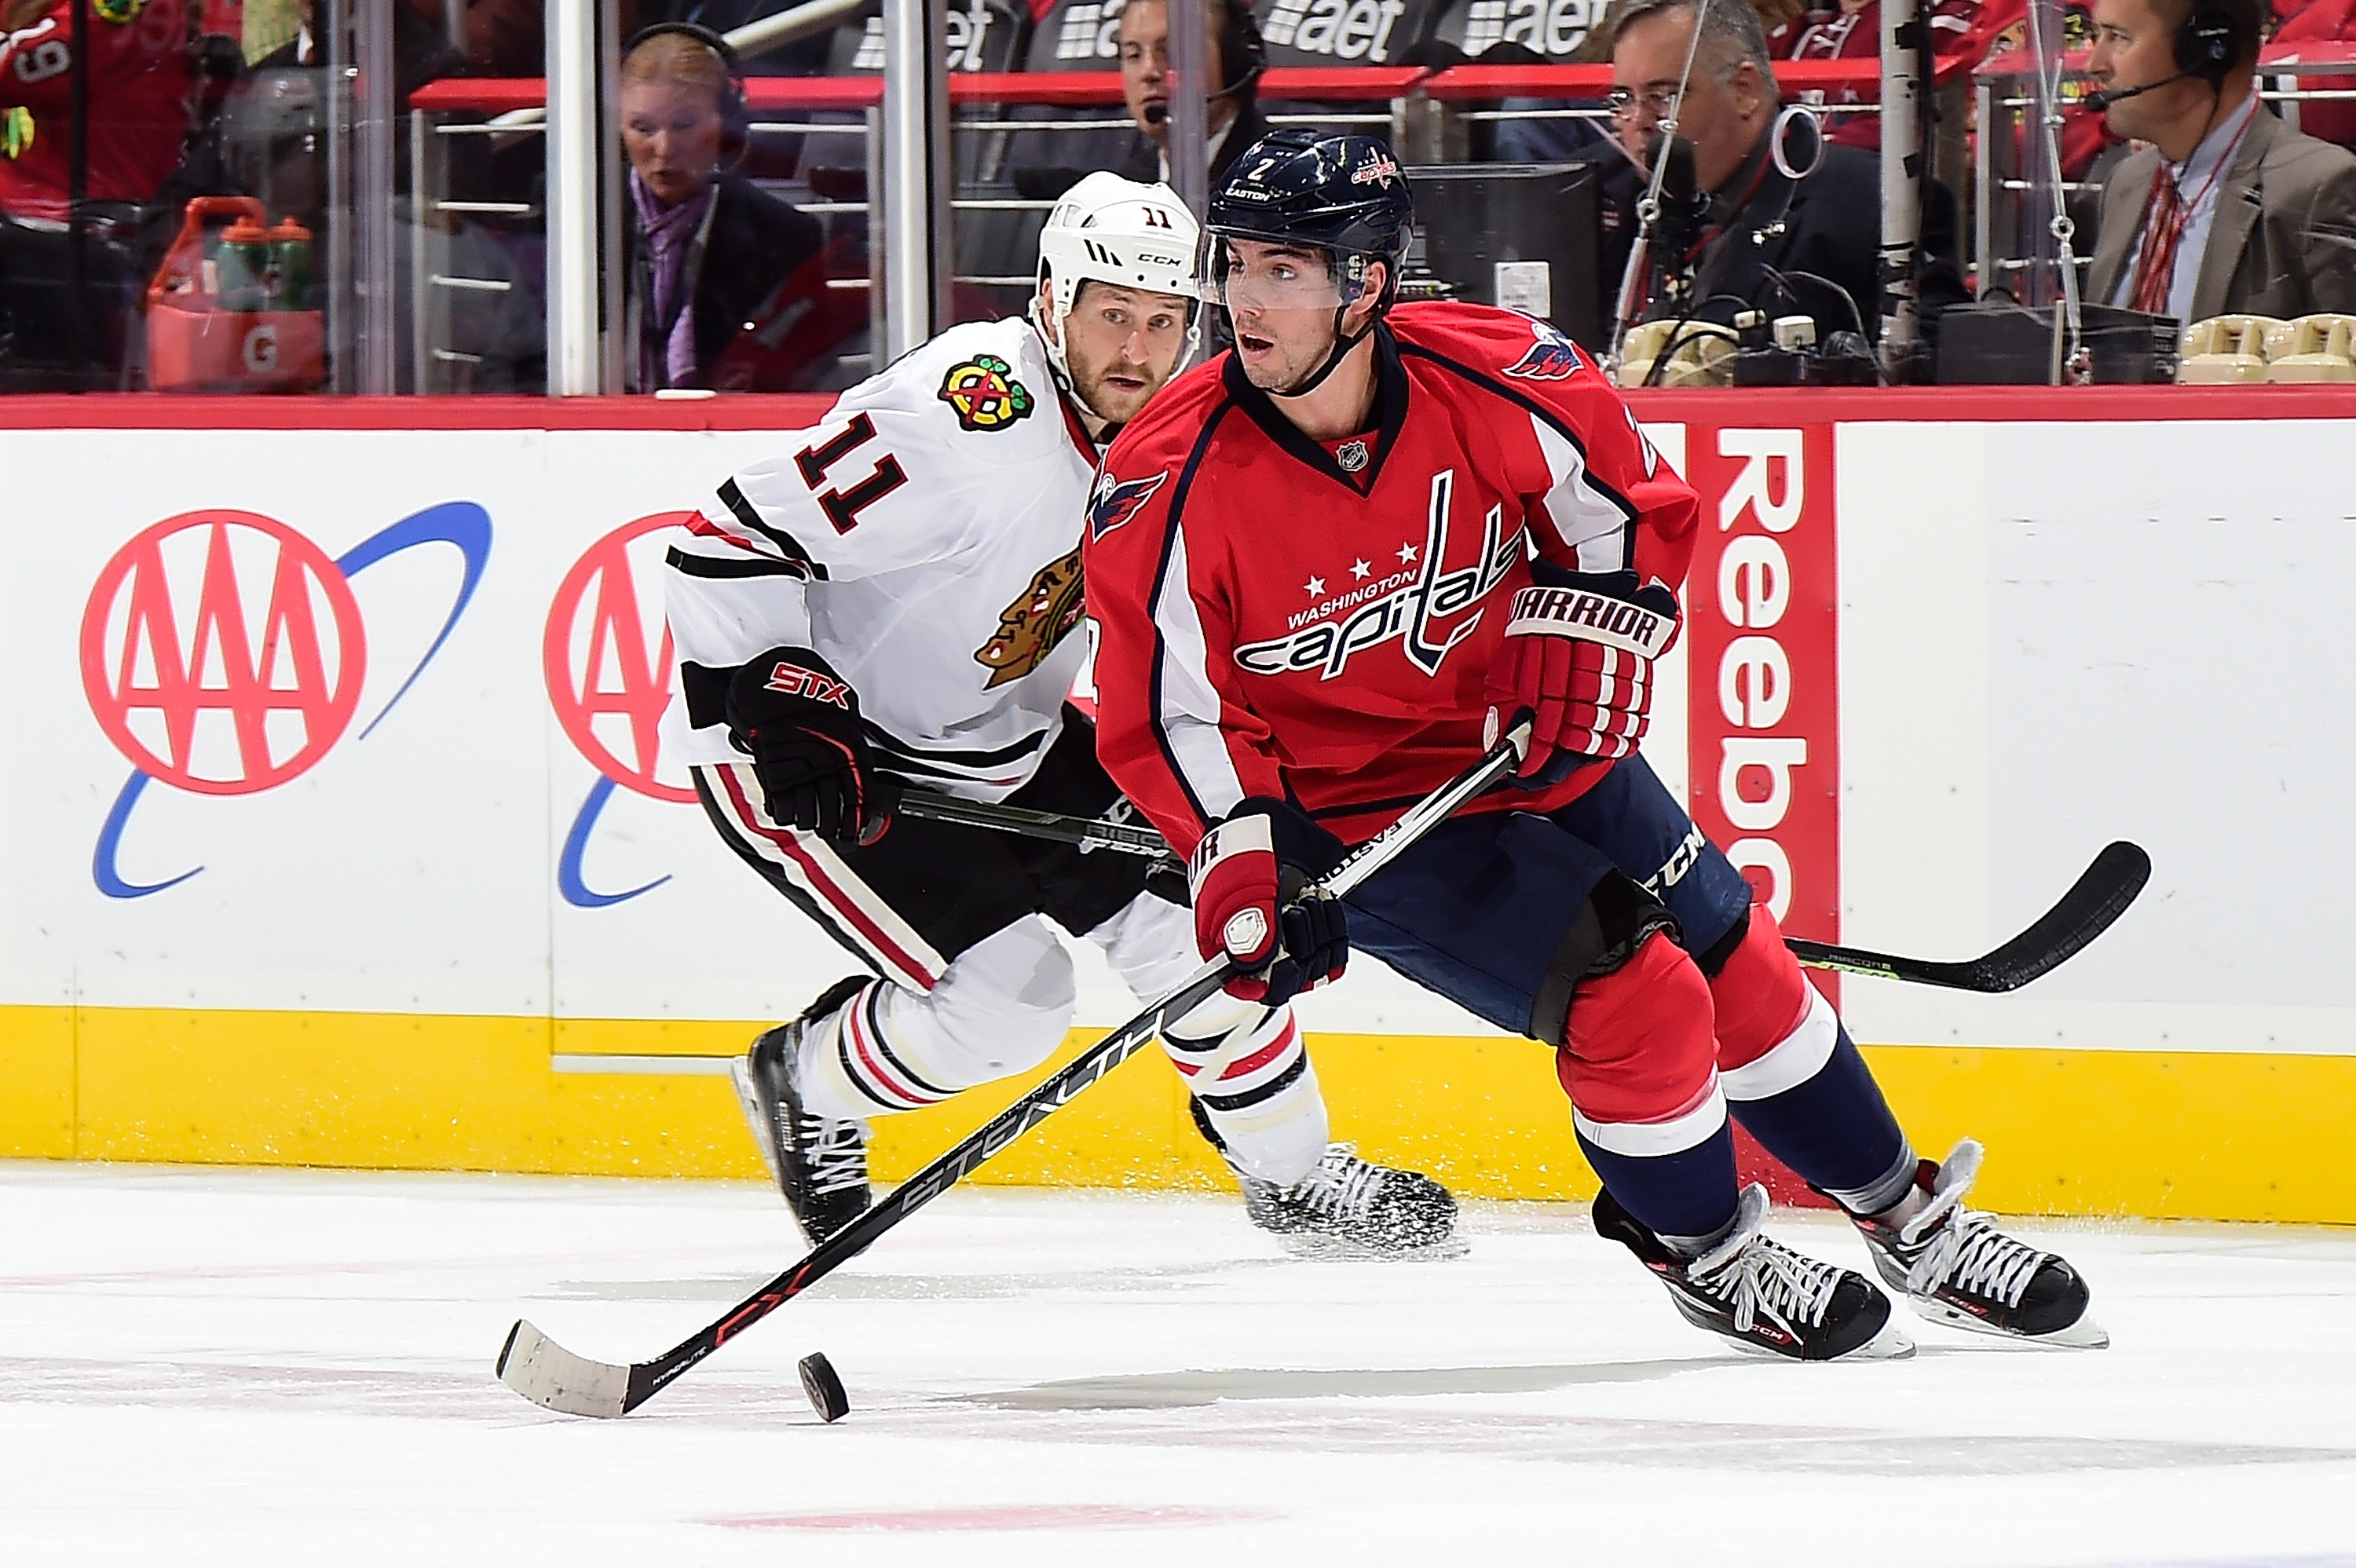 Matt-niskanen-chicago-blackhawks-preview